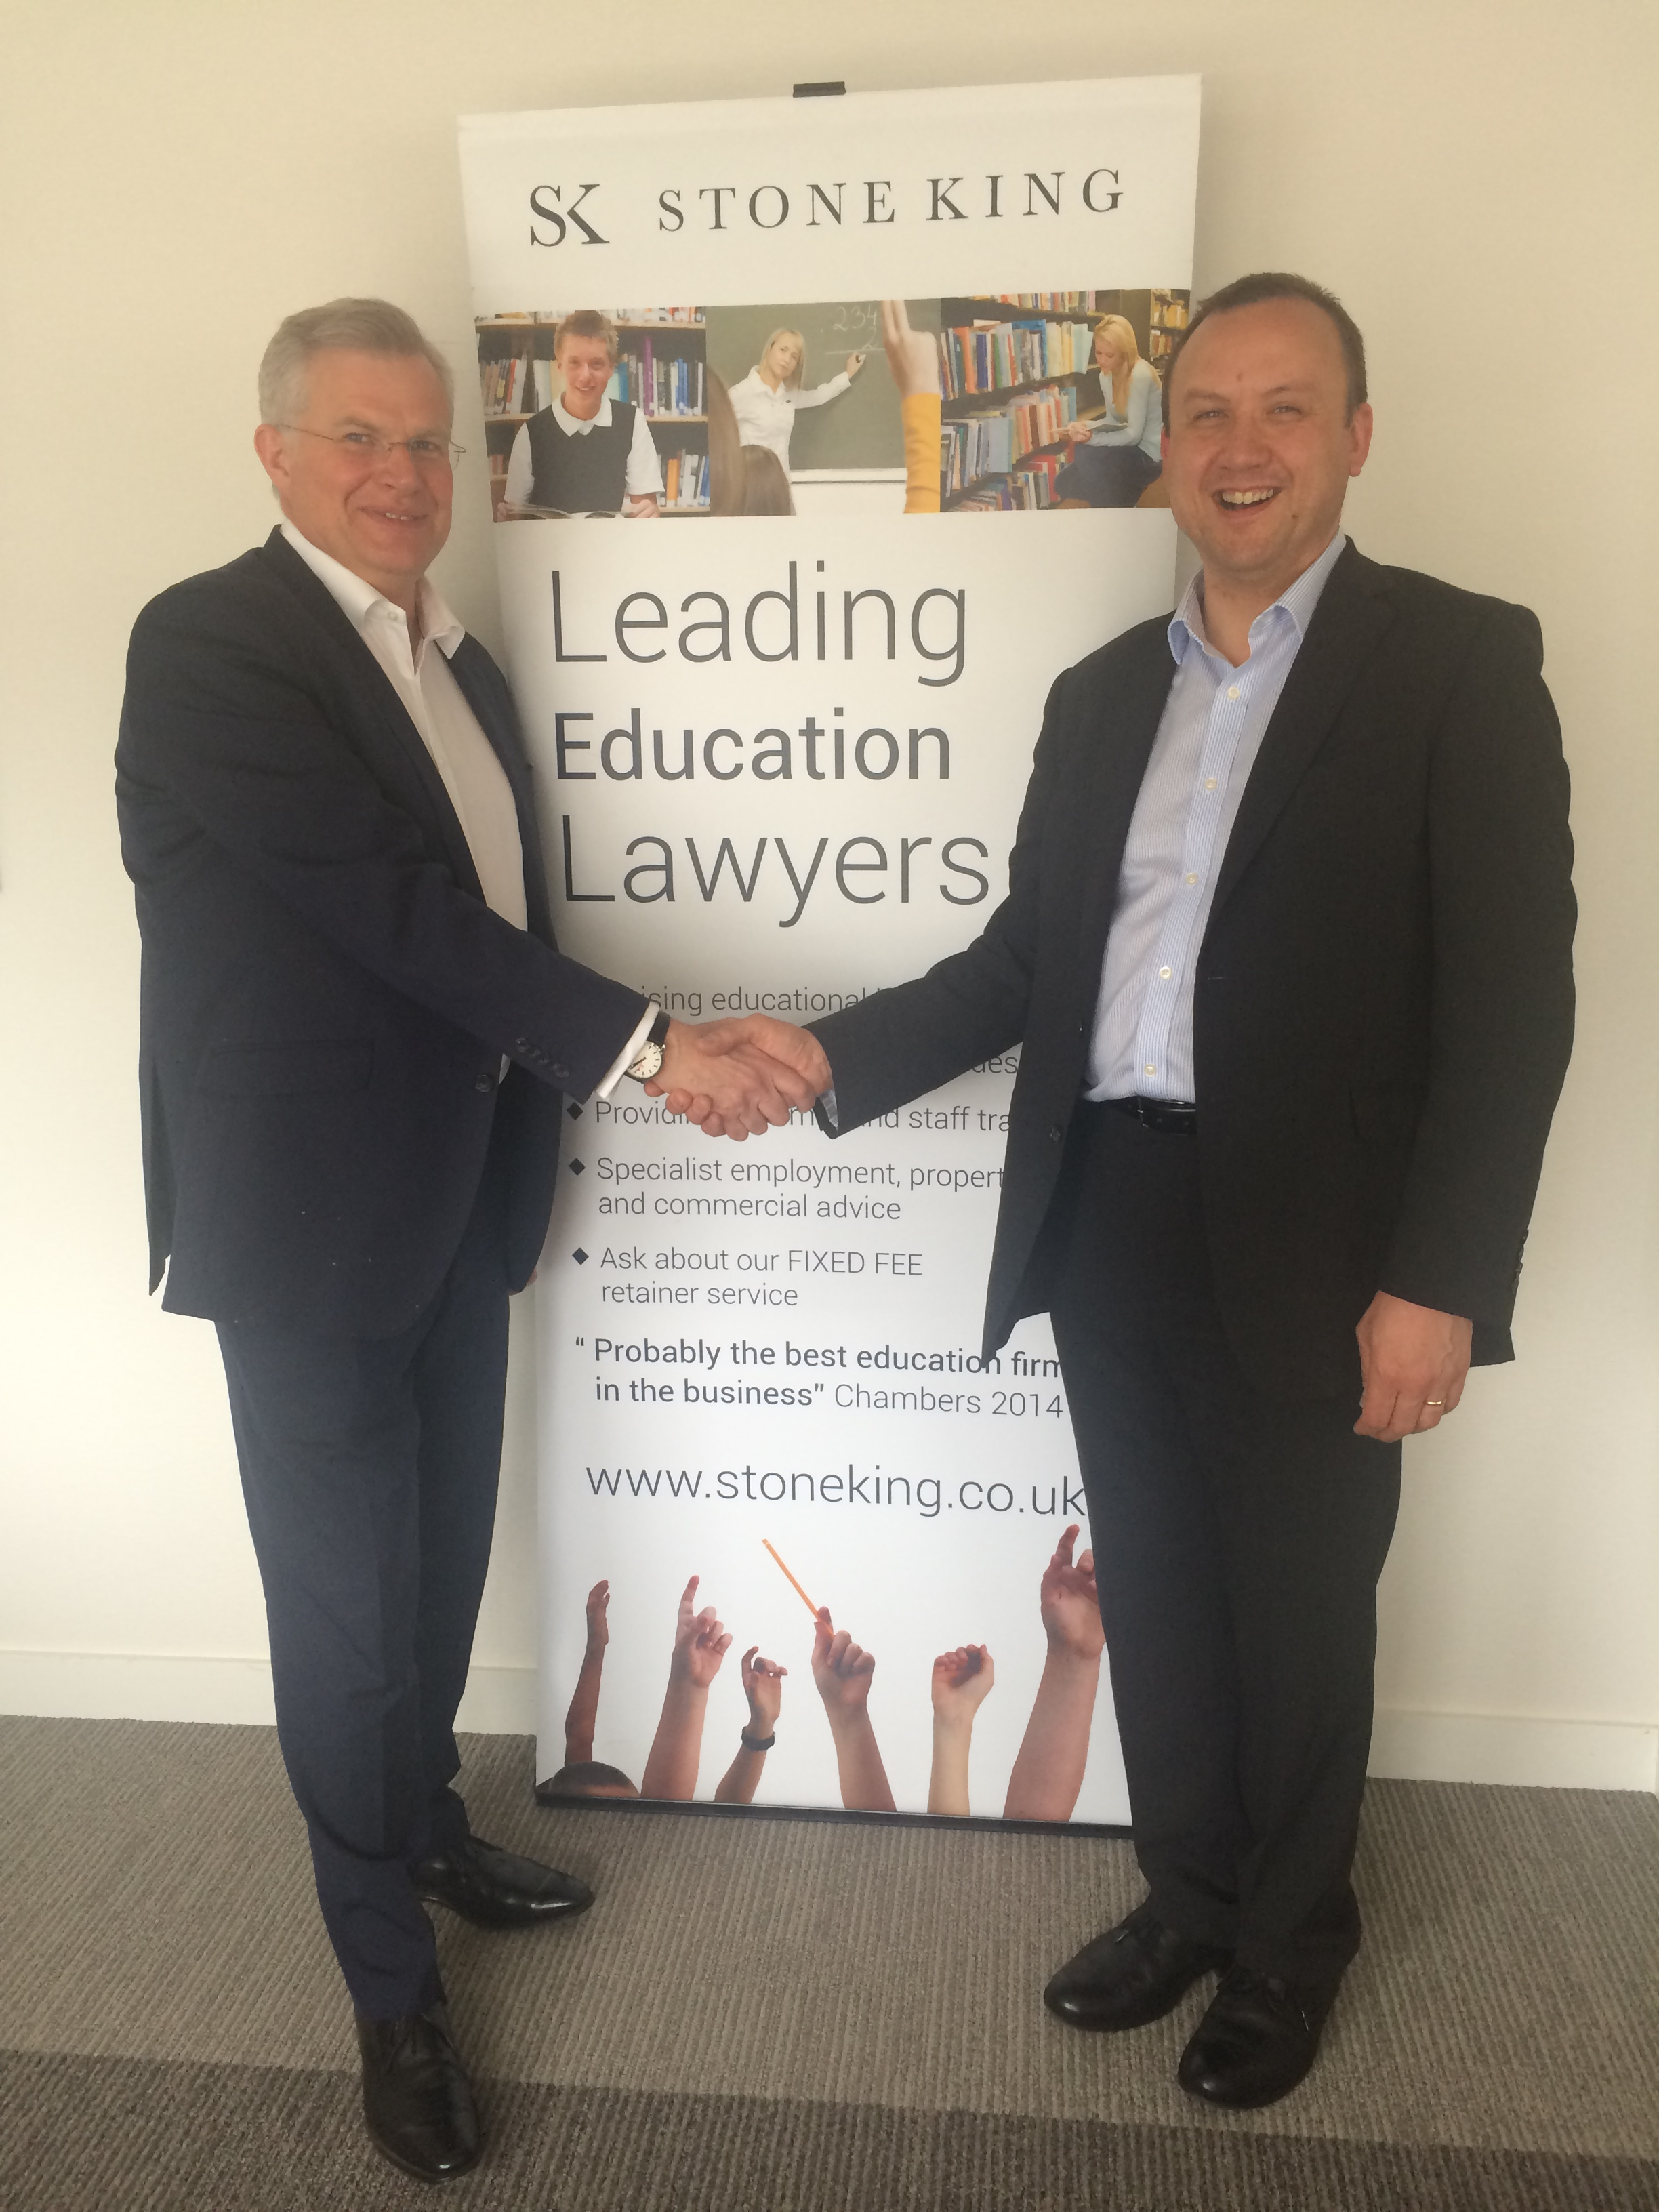 Leeds office opening for Stone King to meet growing demand for education advice